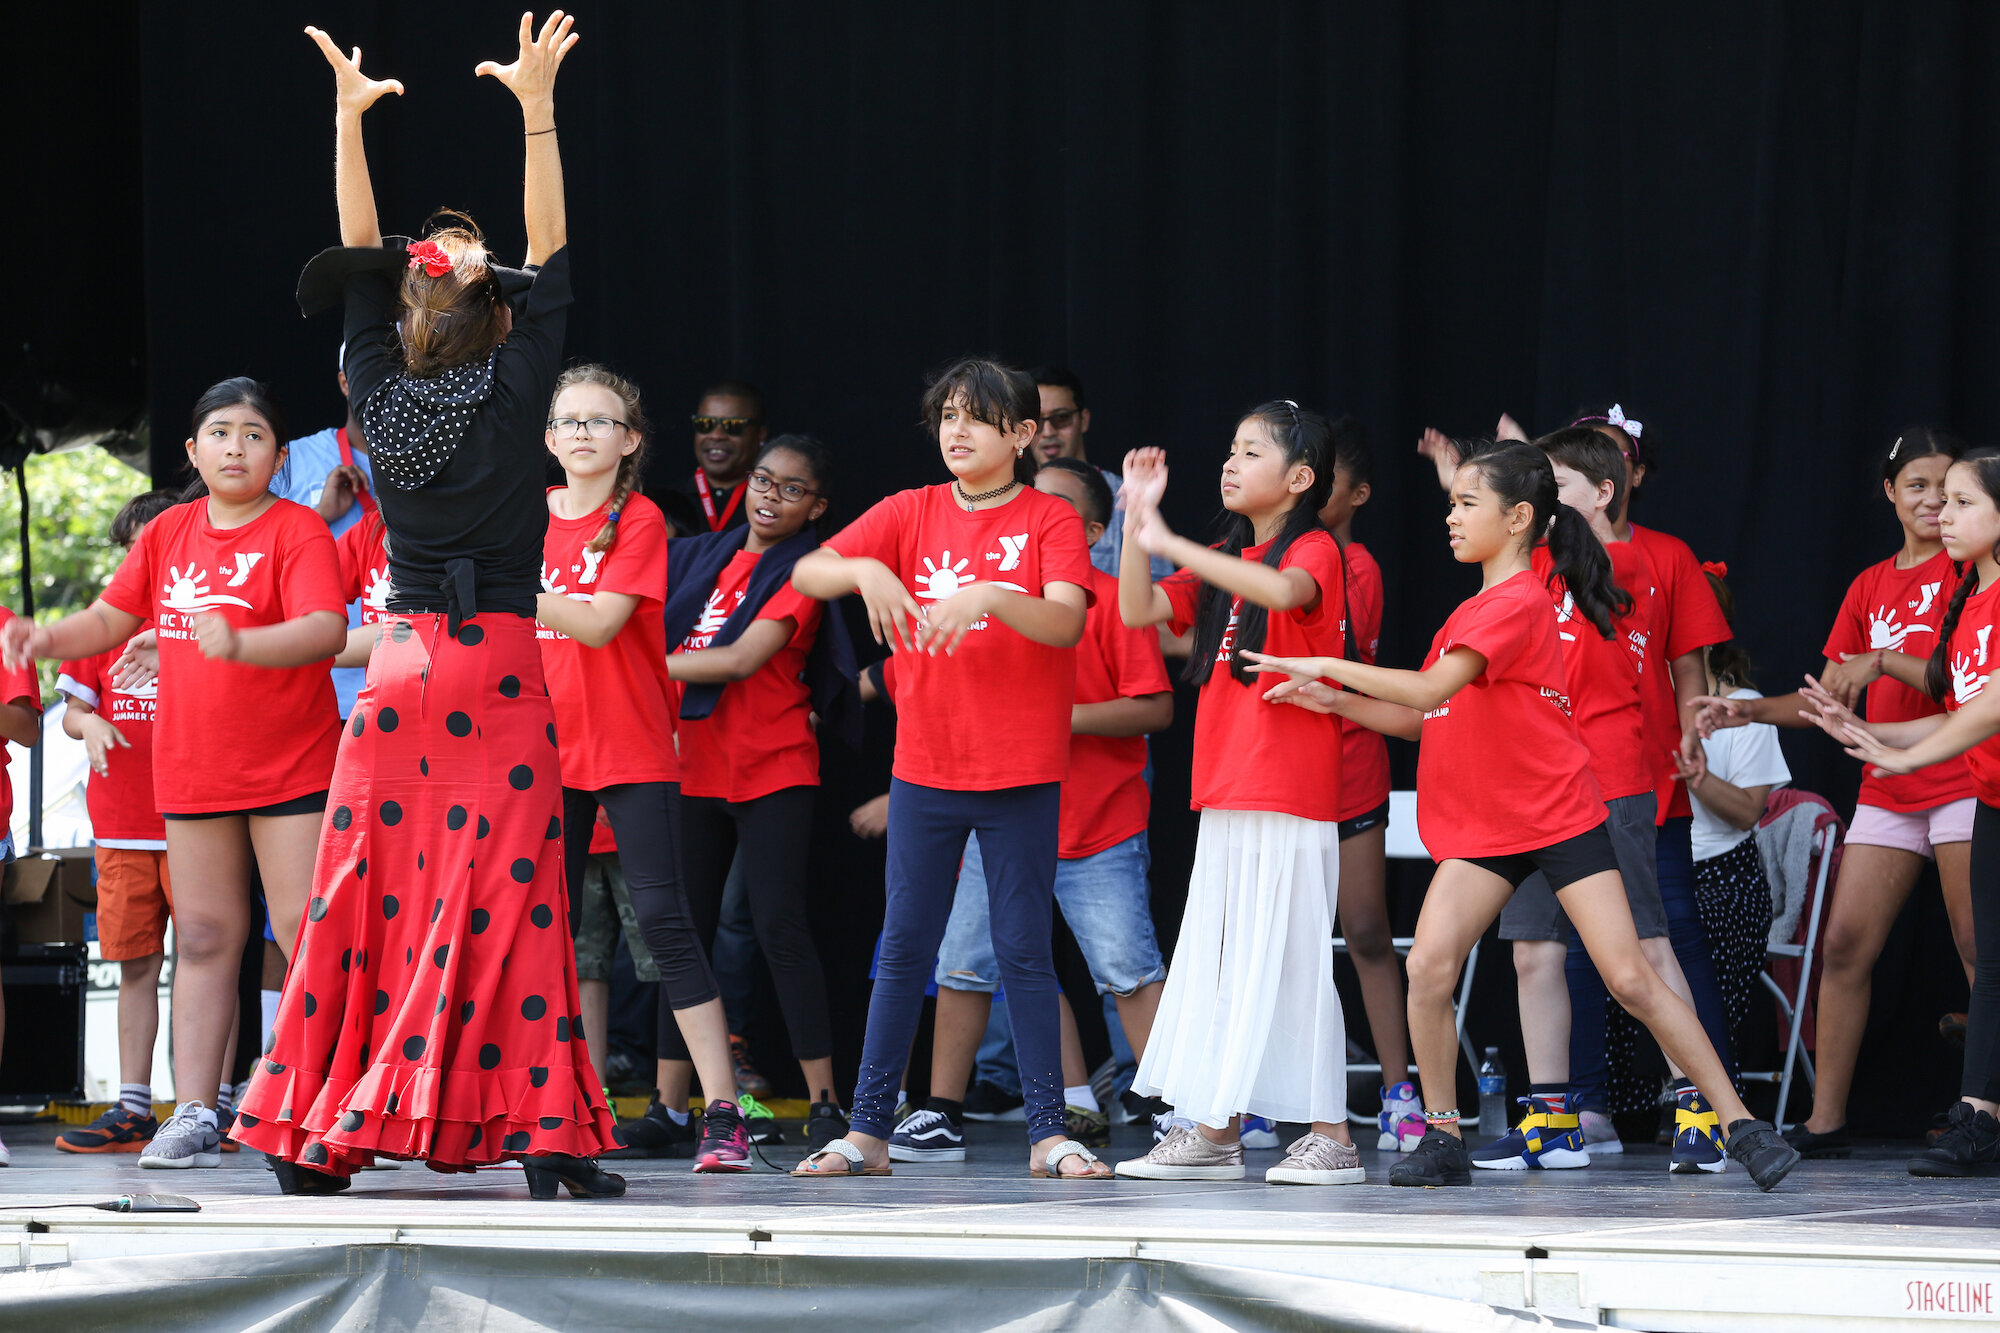 At Queensbridge Park, students learned flamenco on stage.